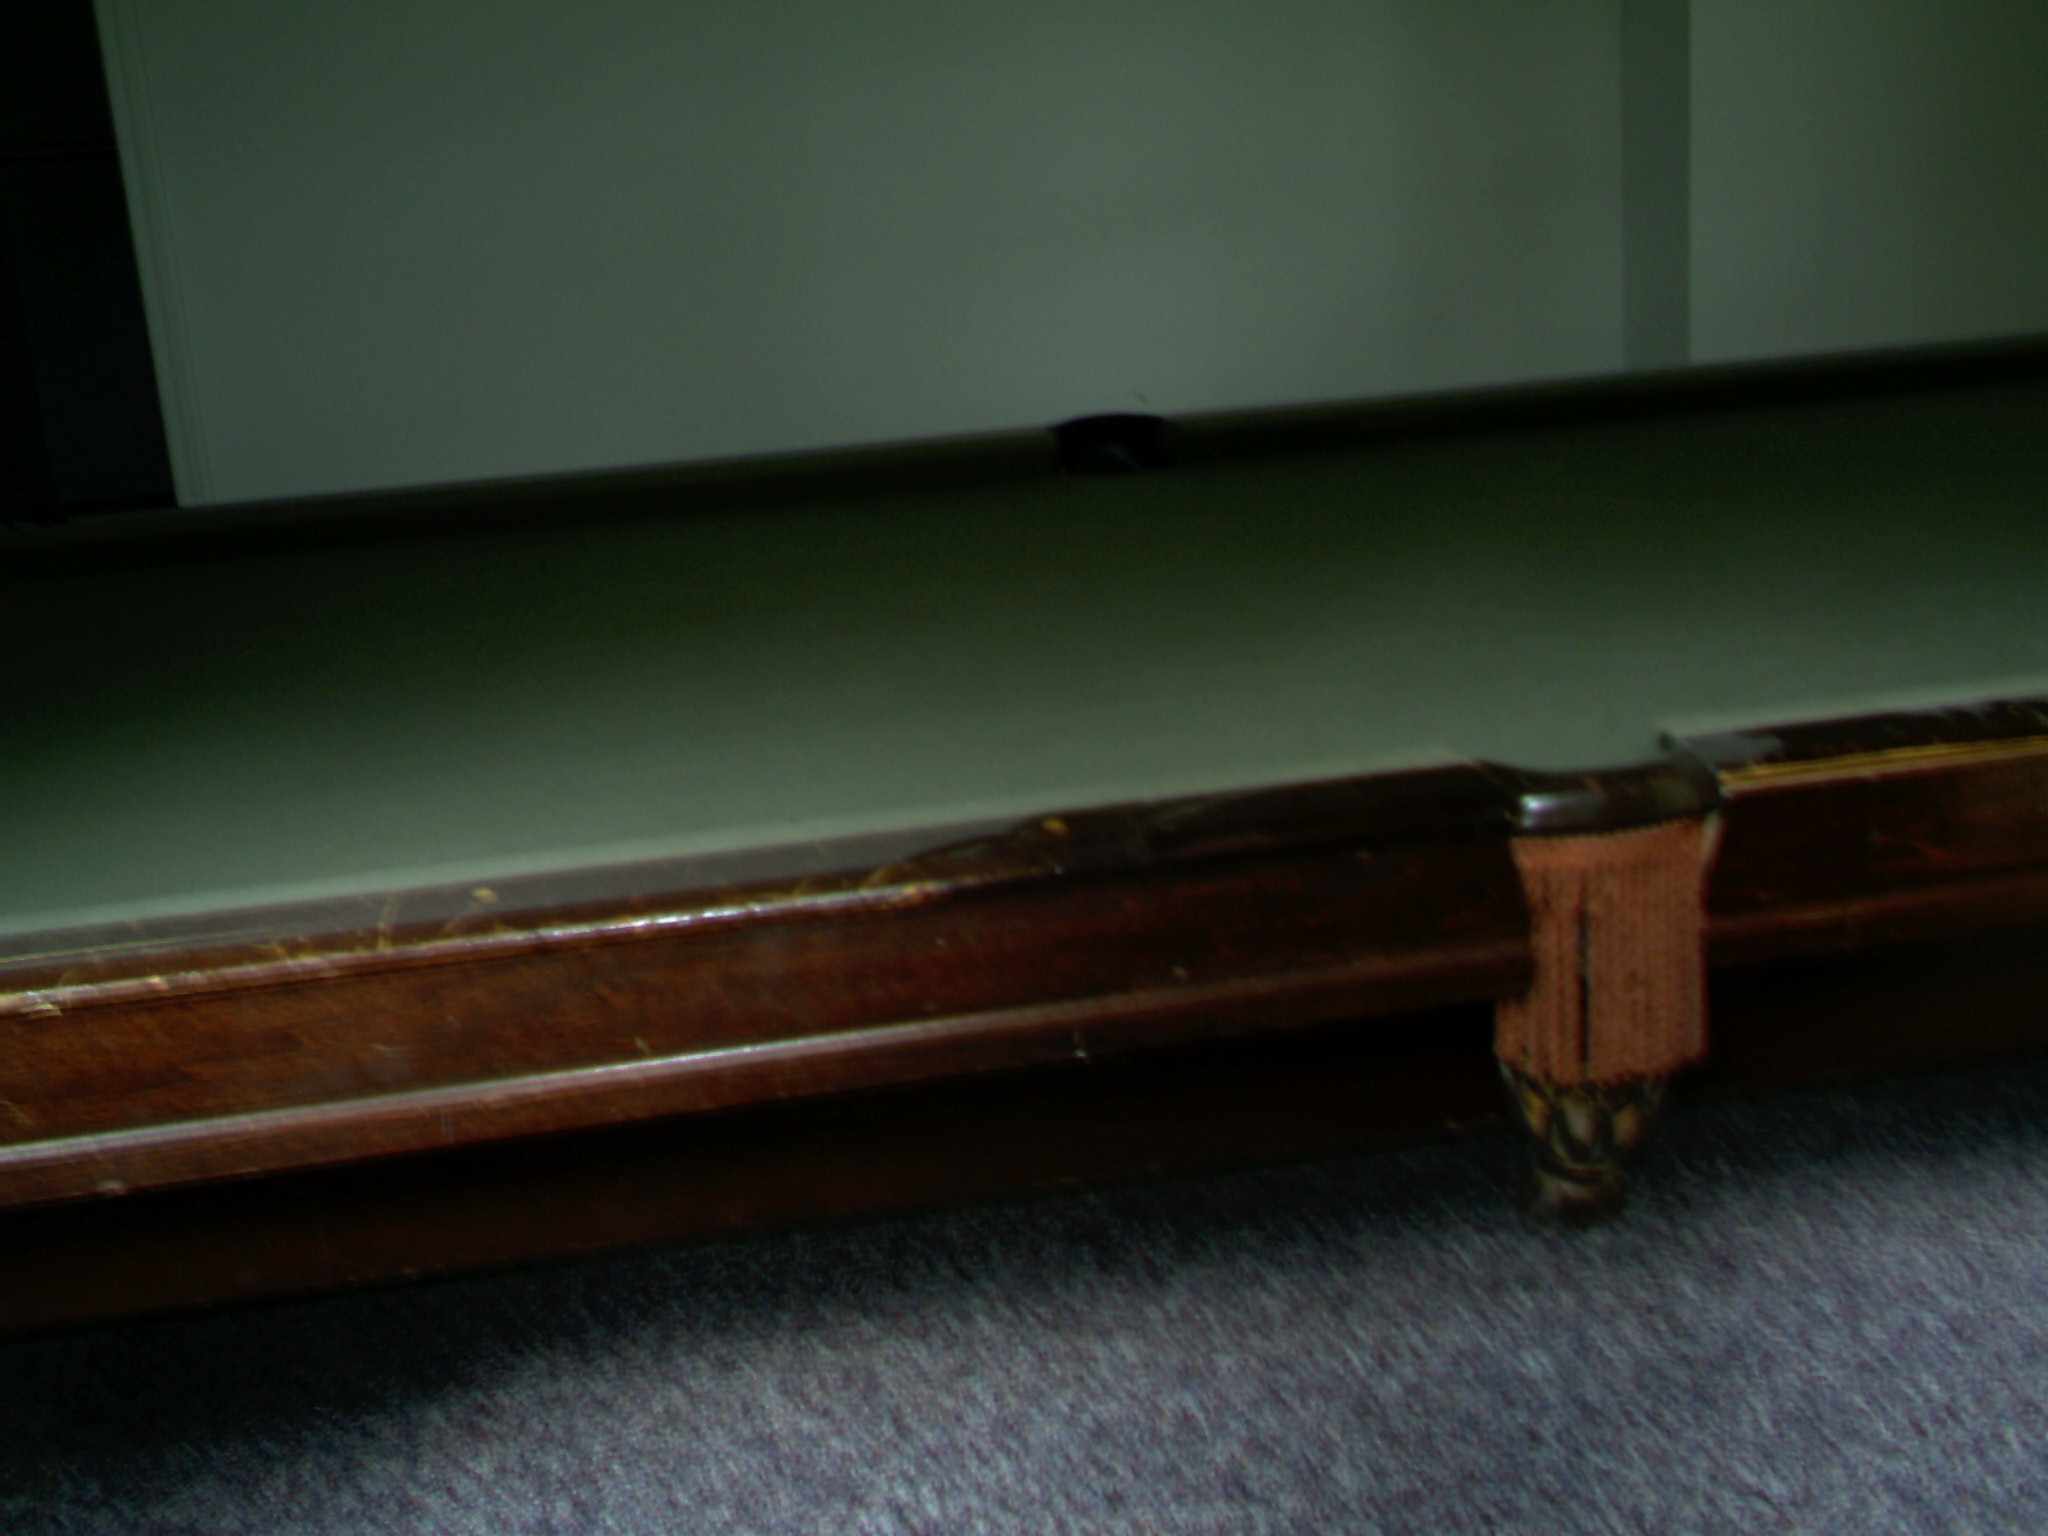 9 gandy this particular slates carries the ball very well its pool hall quality play perfect for an unfinished basement garage or a do it yourself project solutioingenieria Image collections